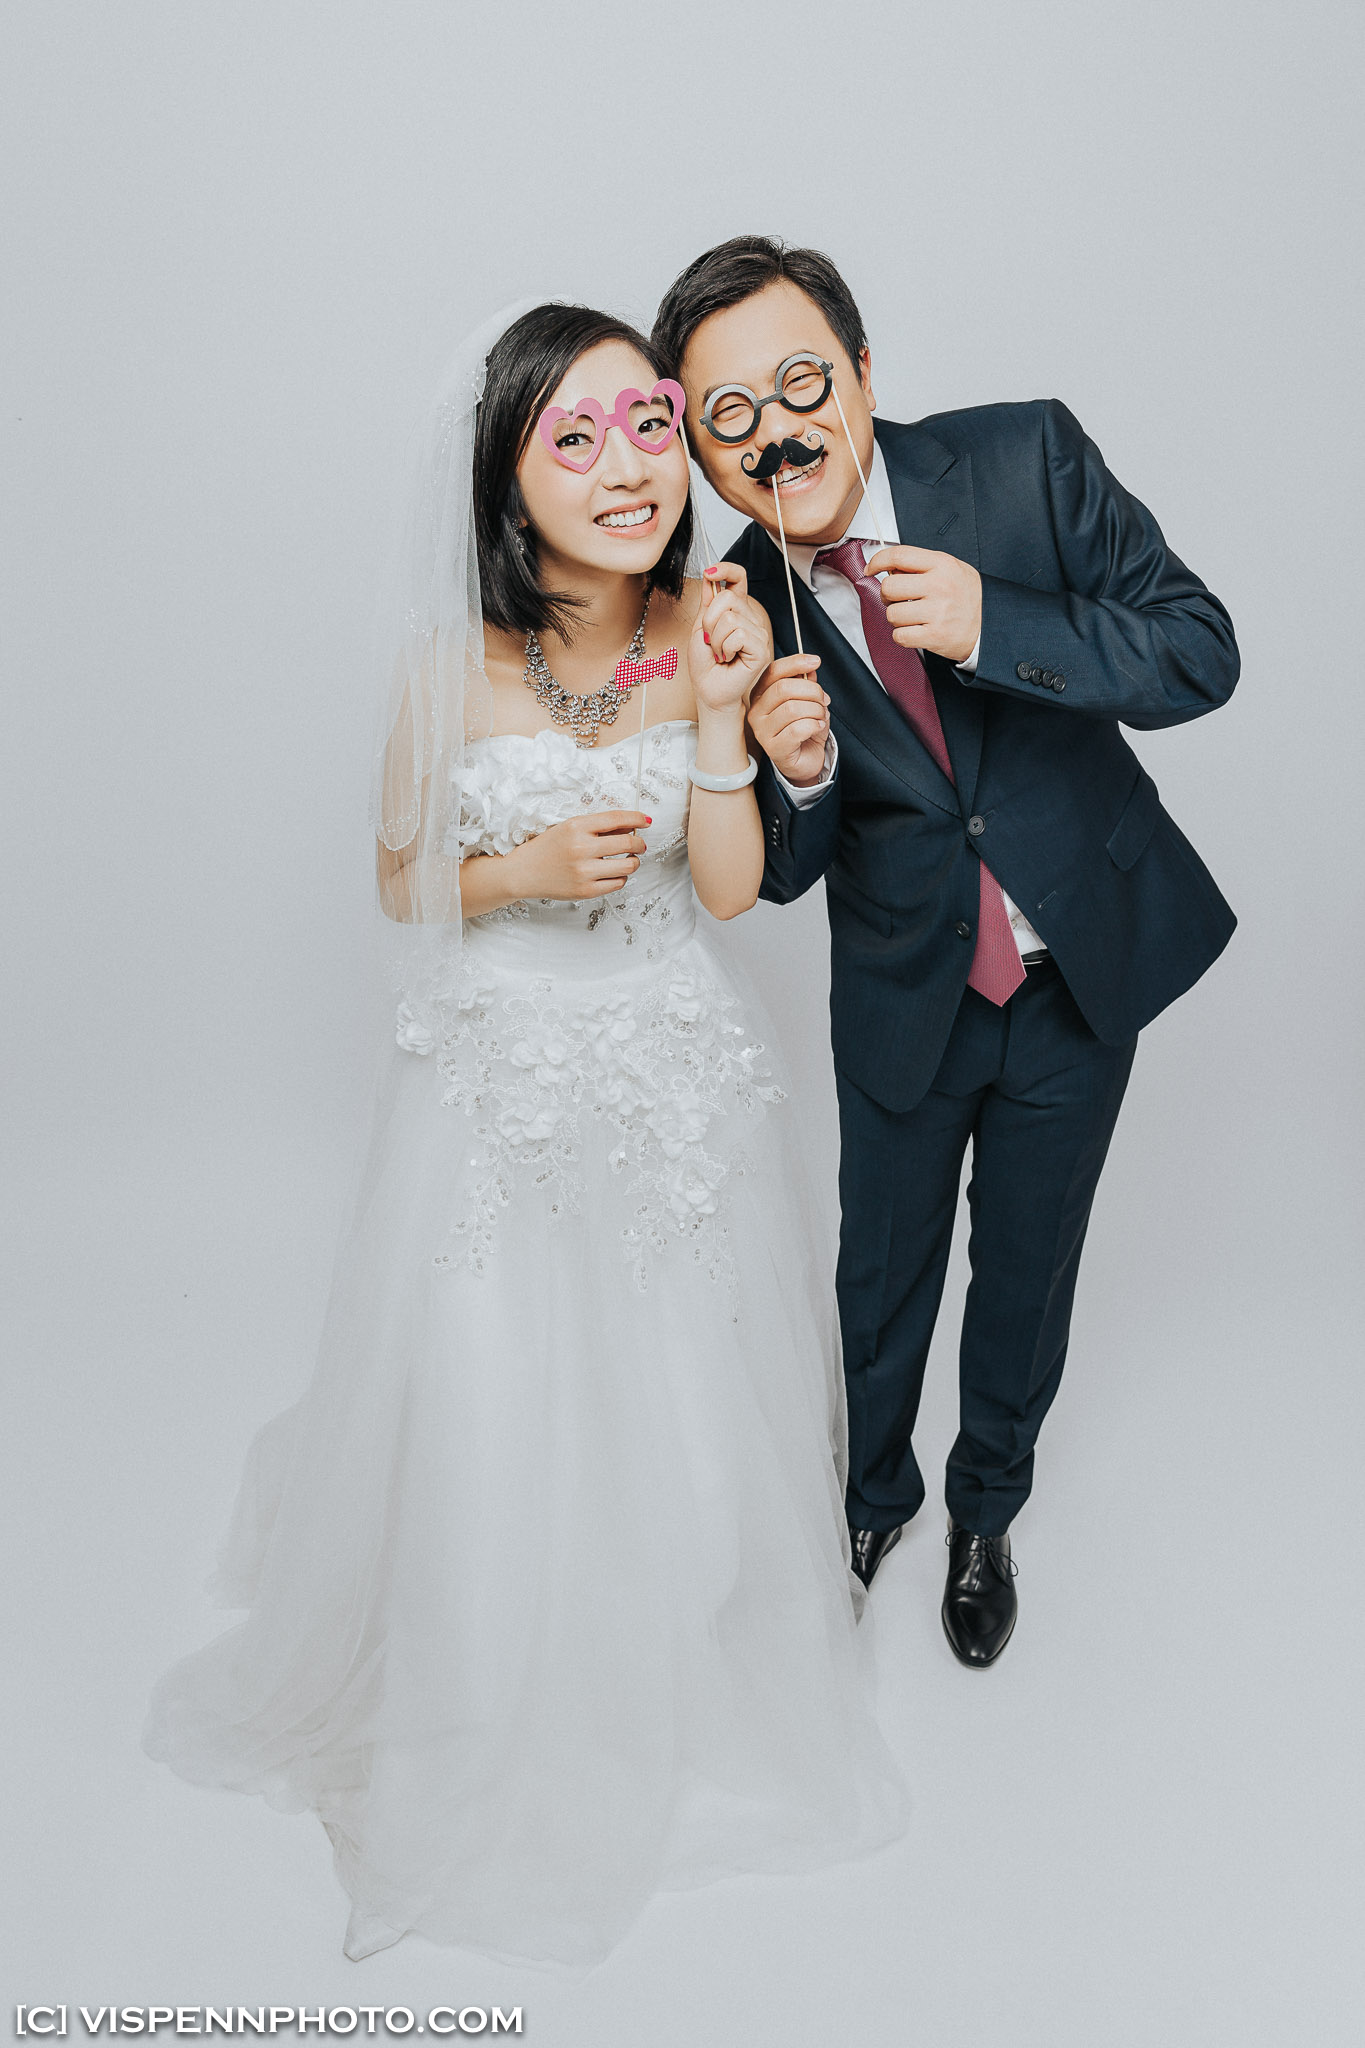 PRE WEDDING Photography Melbourne FangYuan Wedding 1593